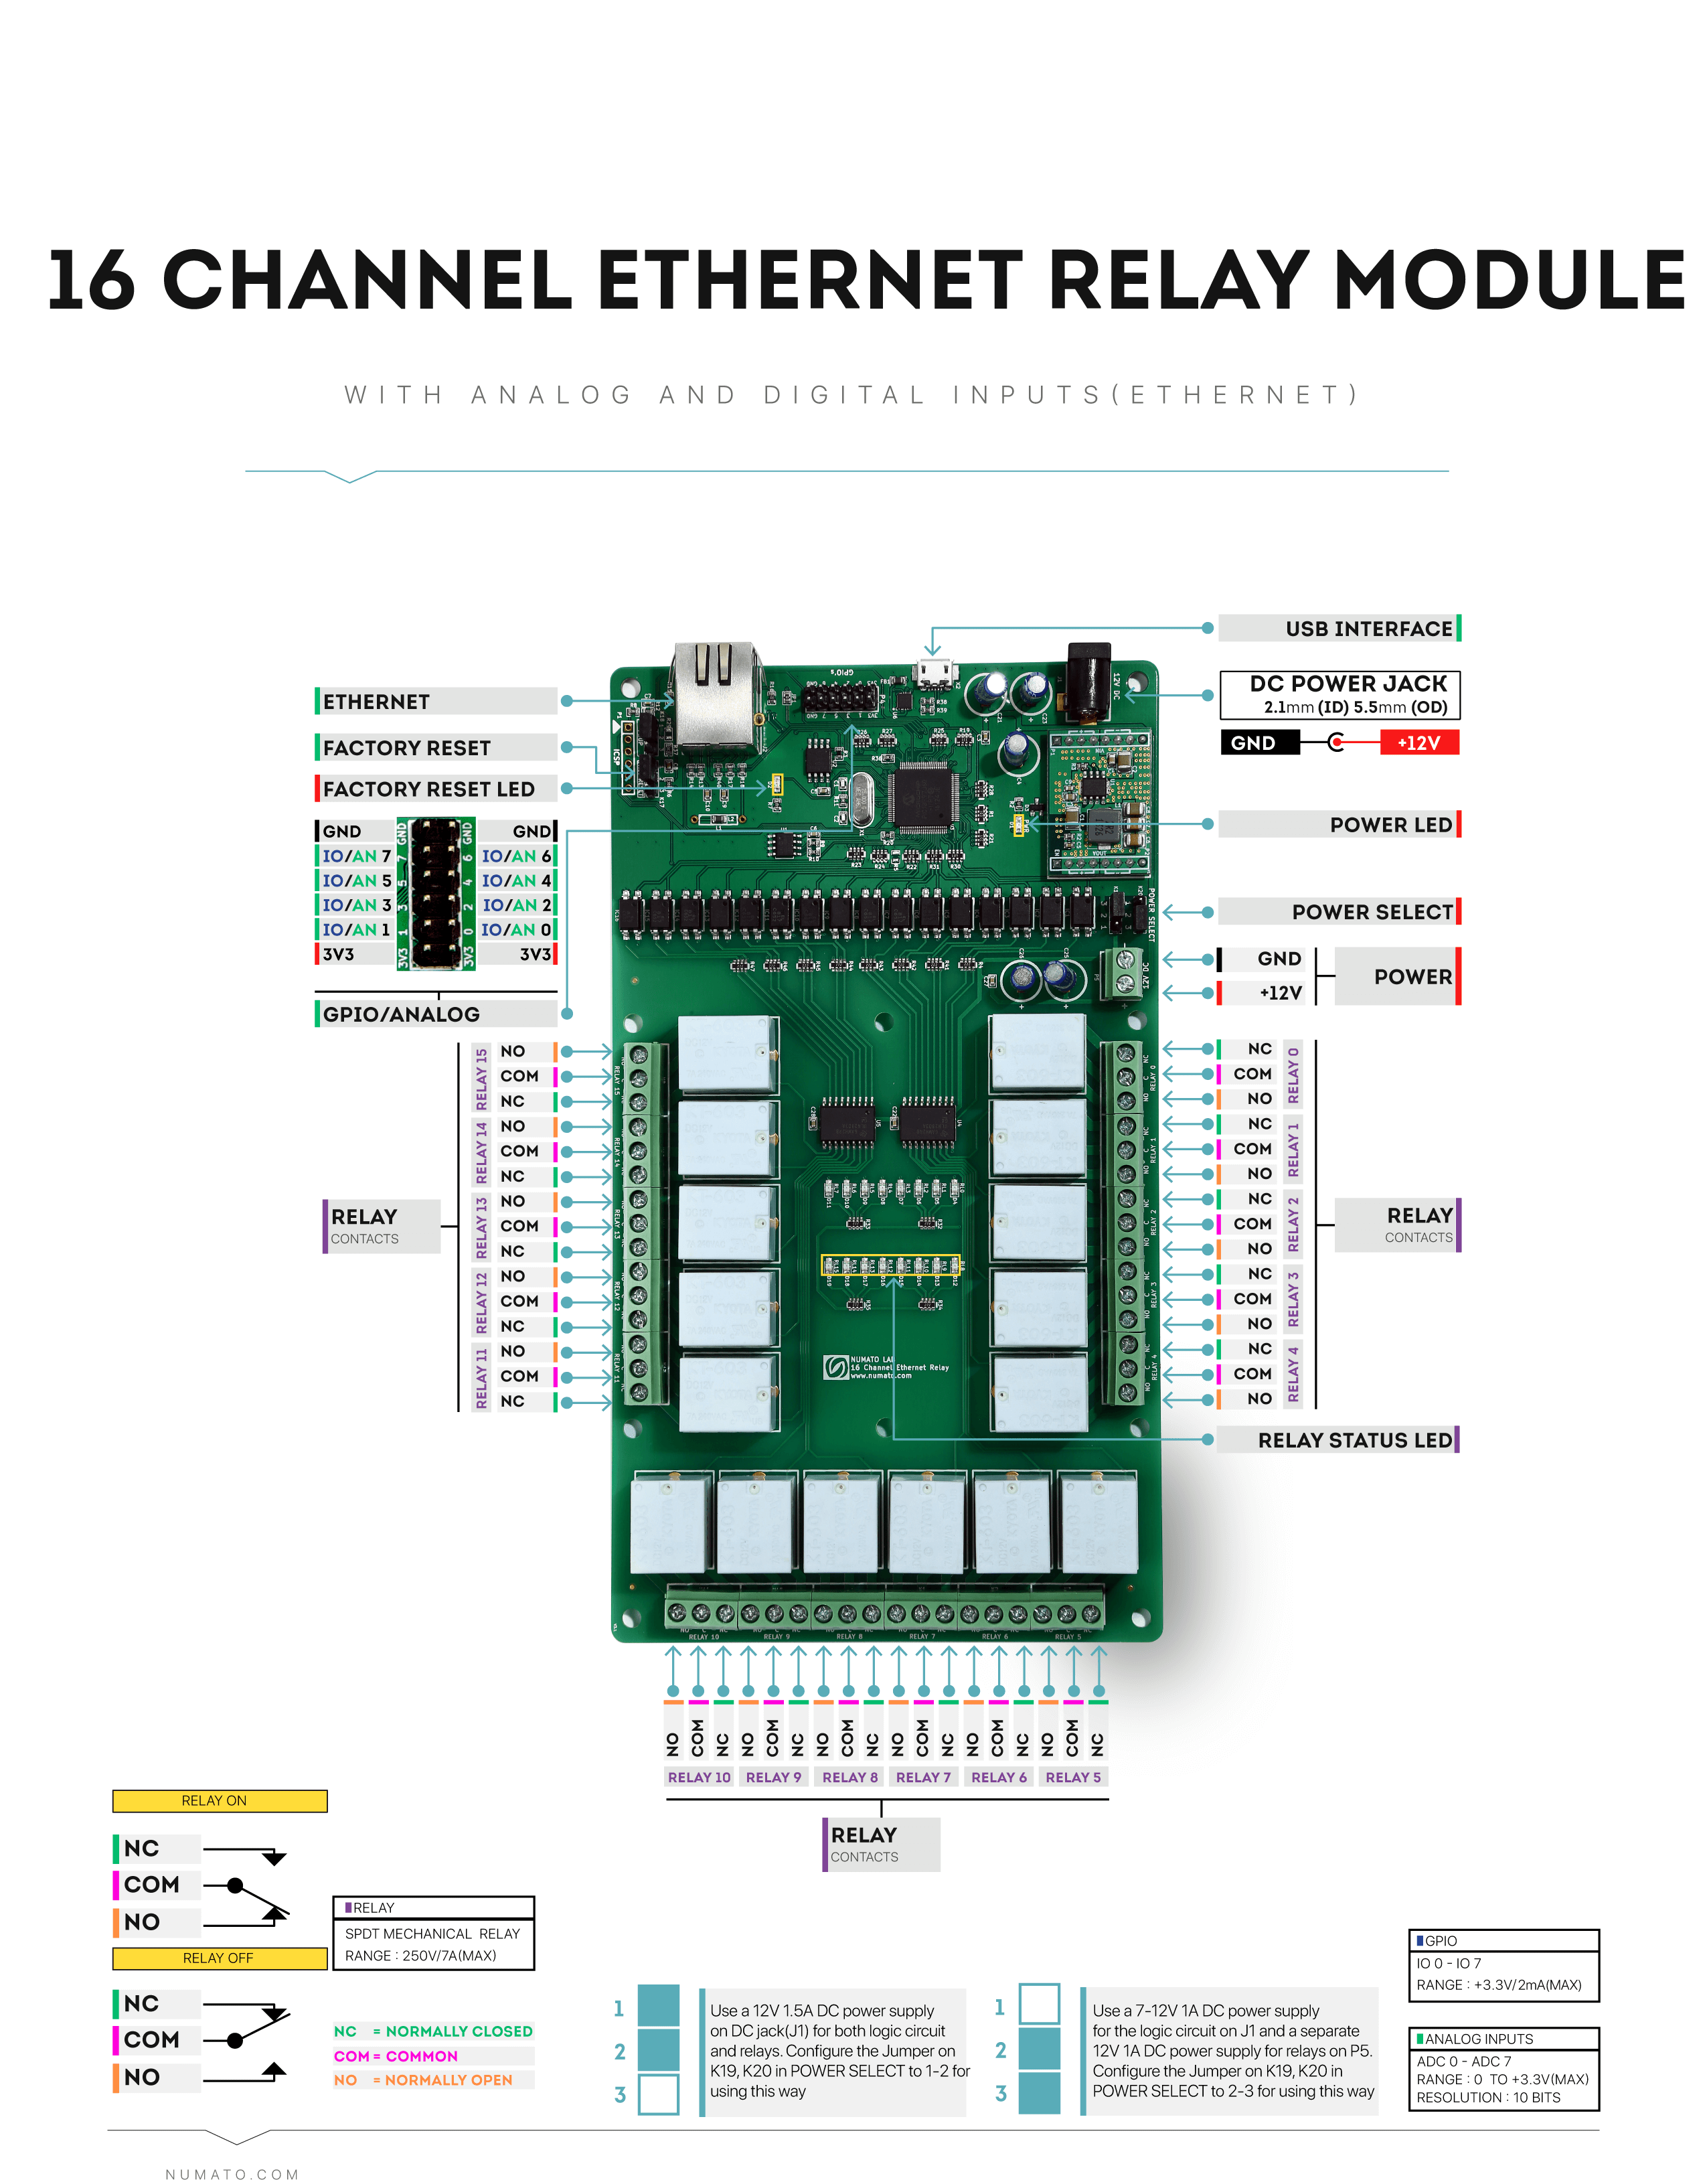 16 Channel Ethernet Relay Module on